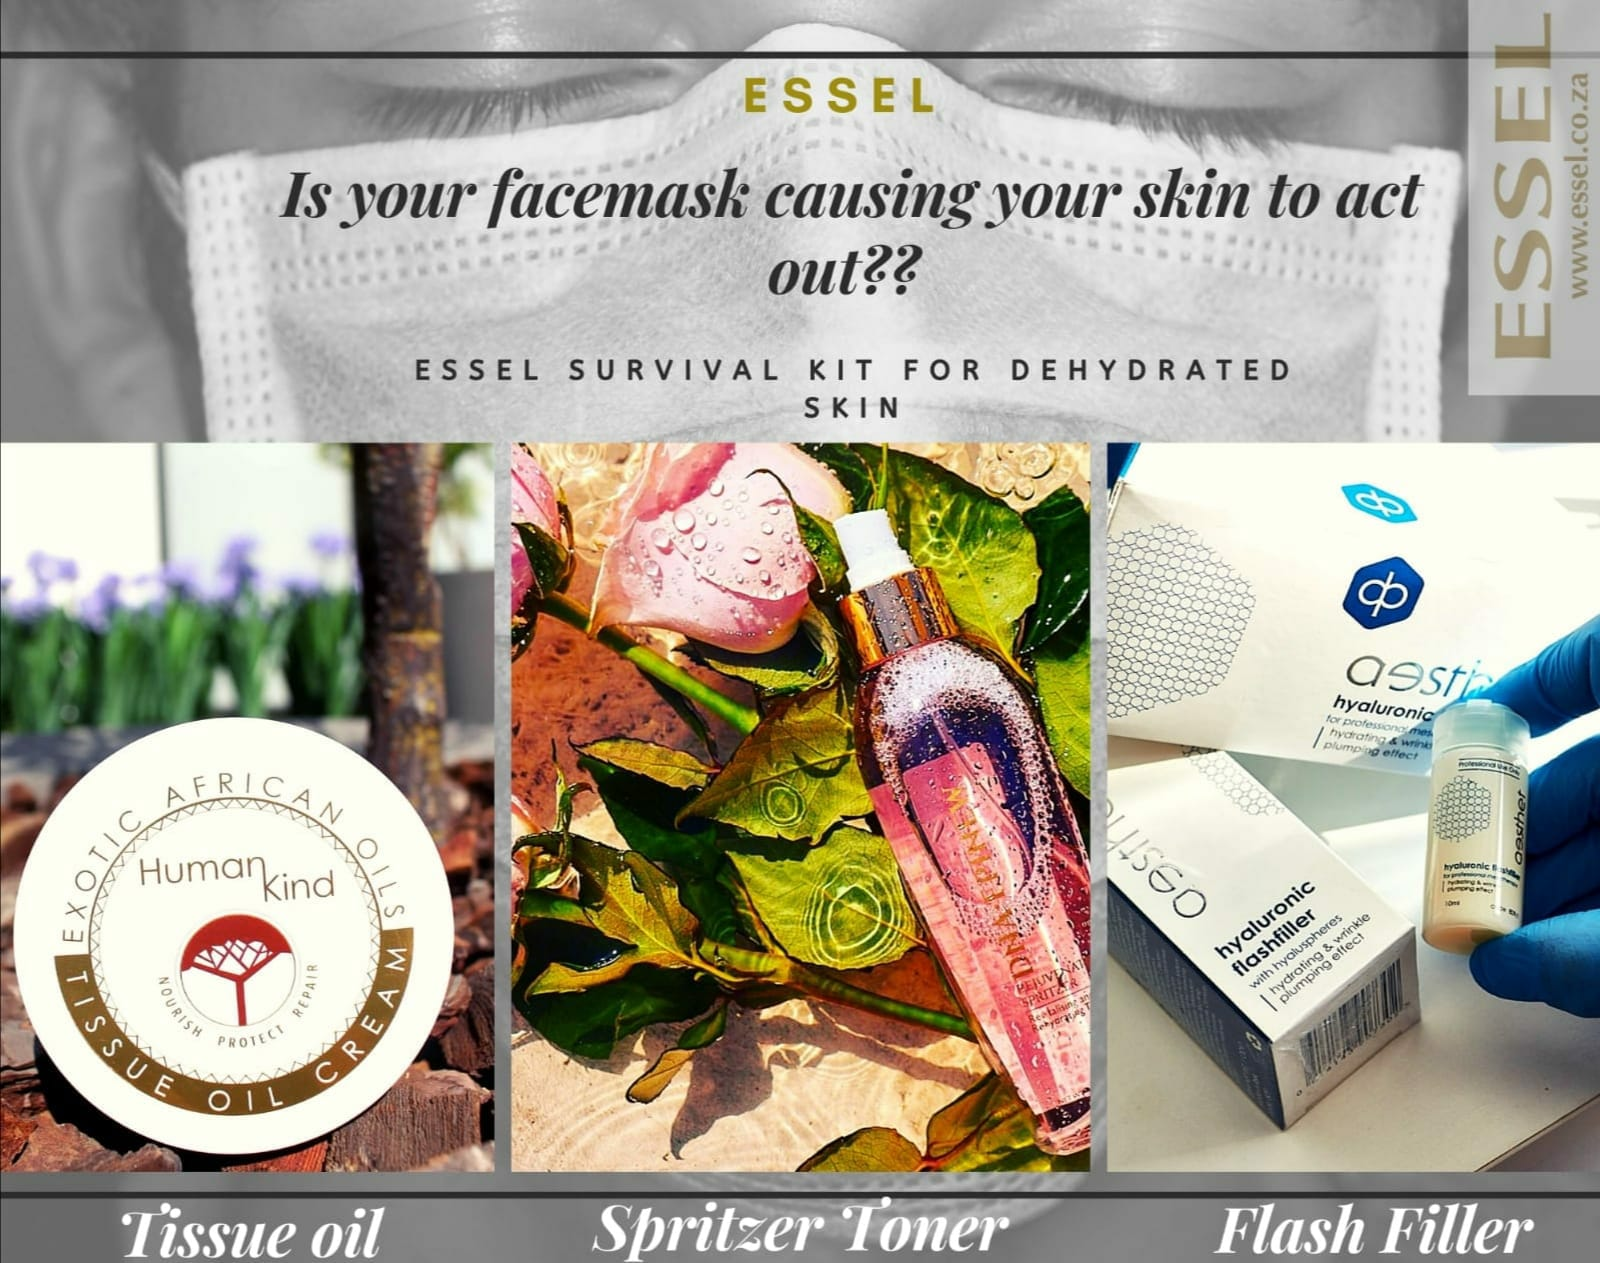 Essel Dehydrated Skin Survival Kit